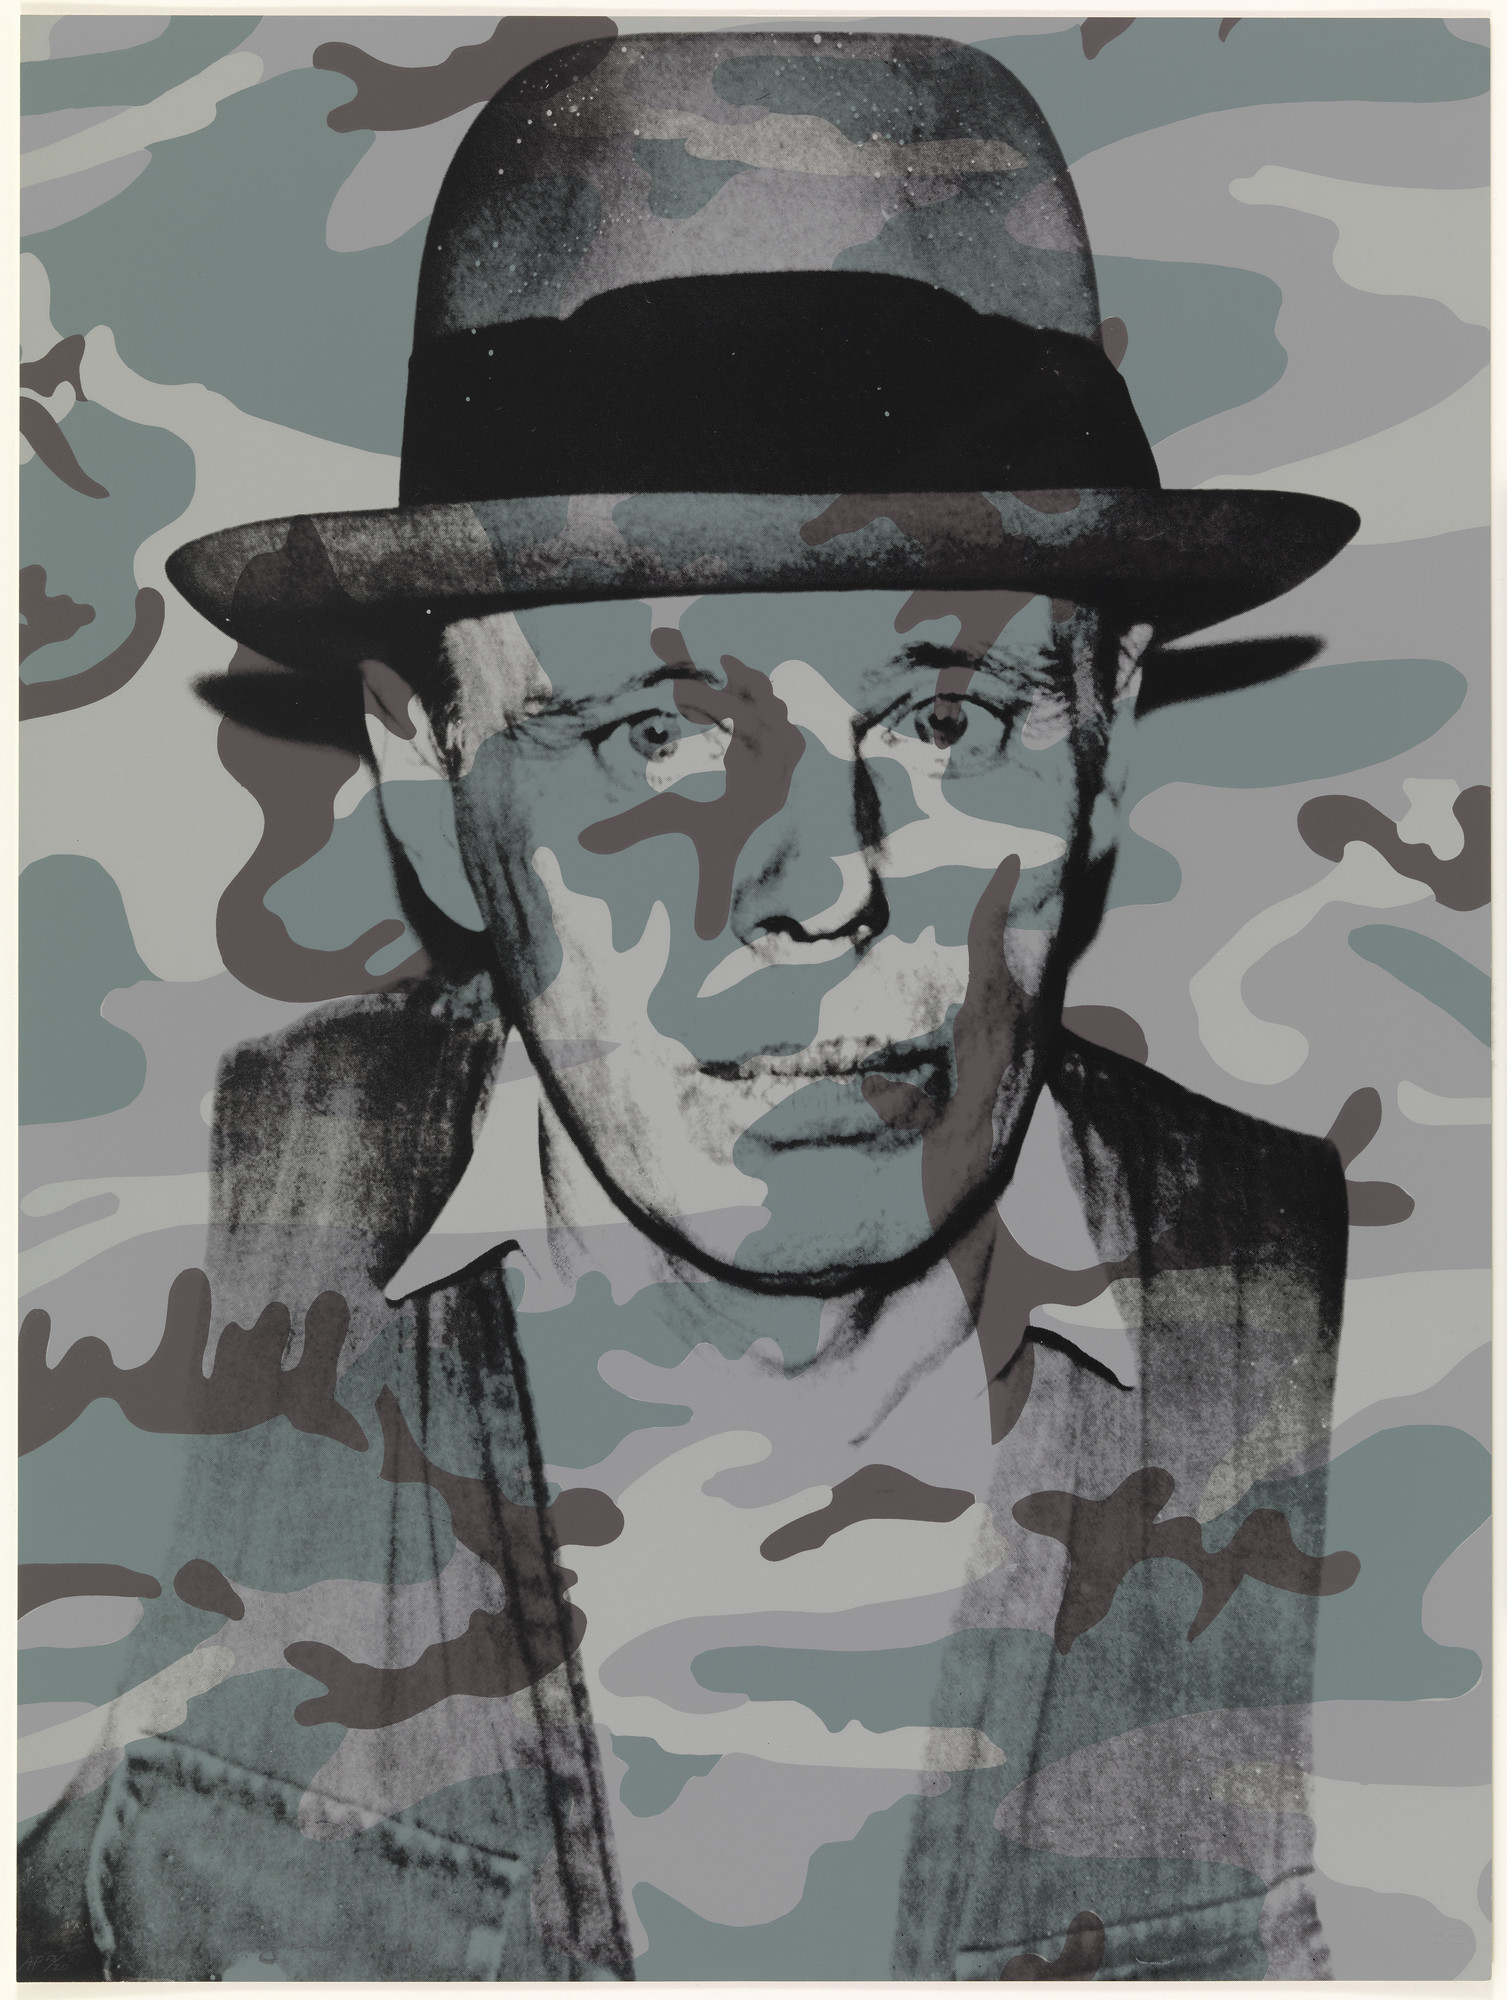 Andy Warhol. Joseph Beuys in Memoriam. 1986